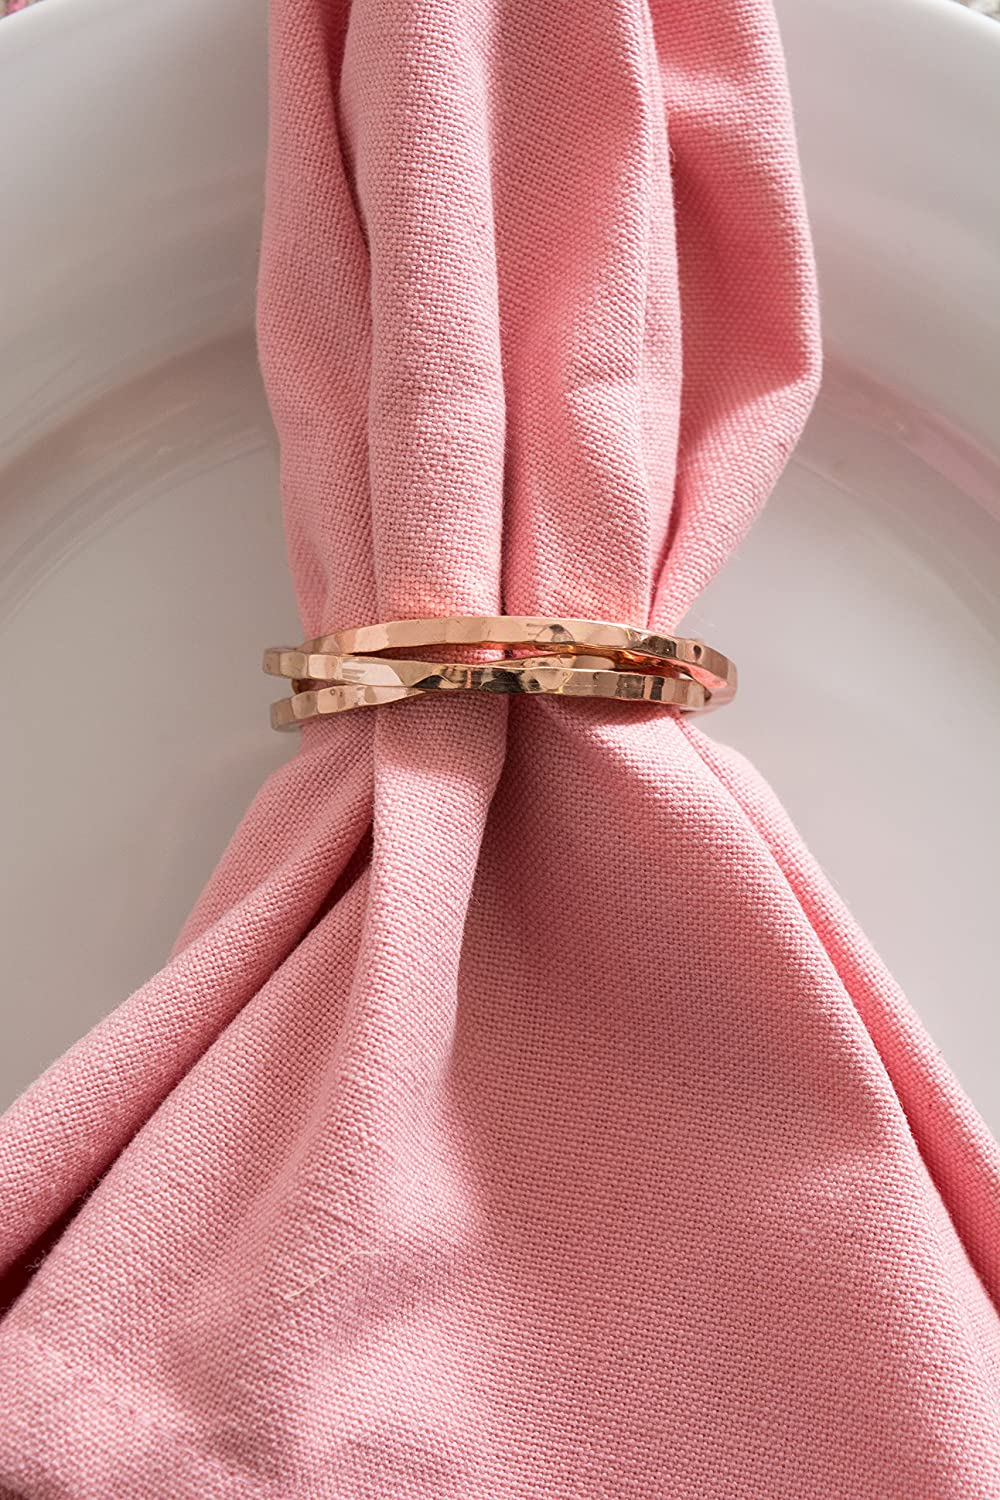 Amazon.com: DII Napkin Rings for Family Dinners, Weddings, Outdoor ...